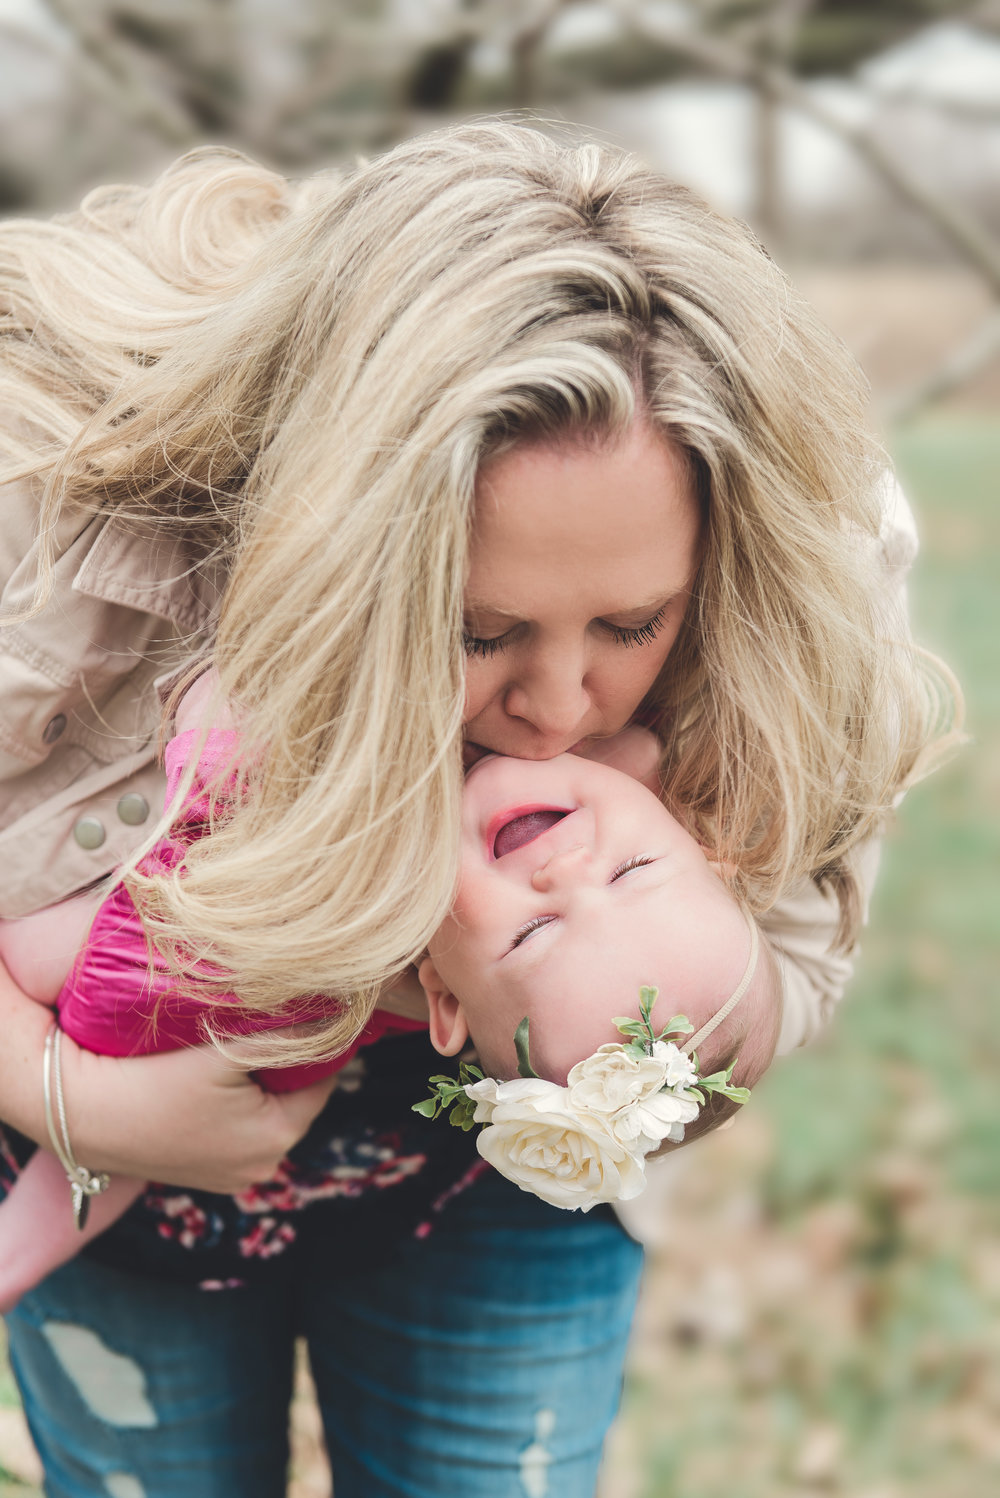 Mom kissing baby candid image